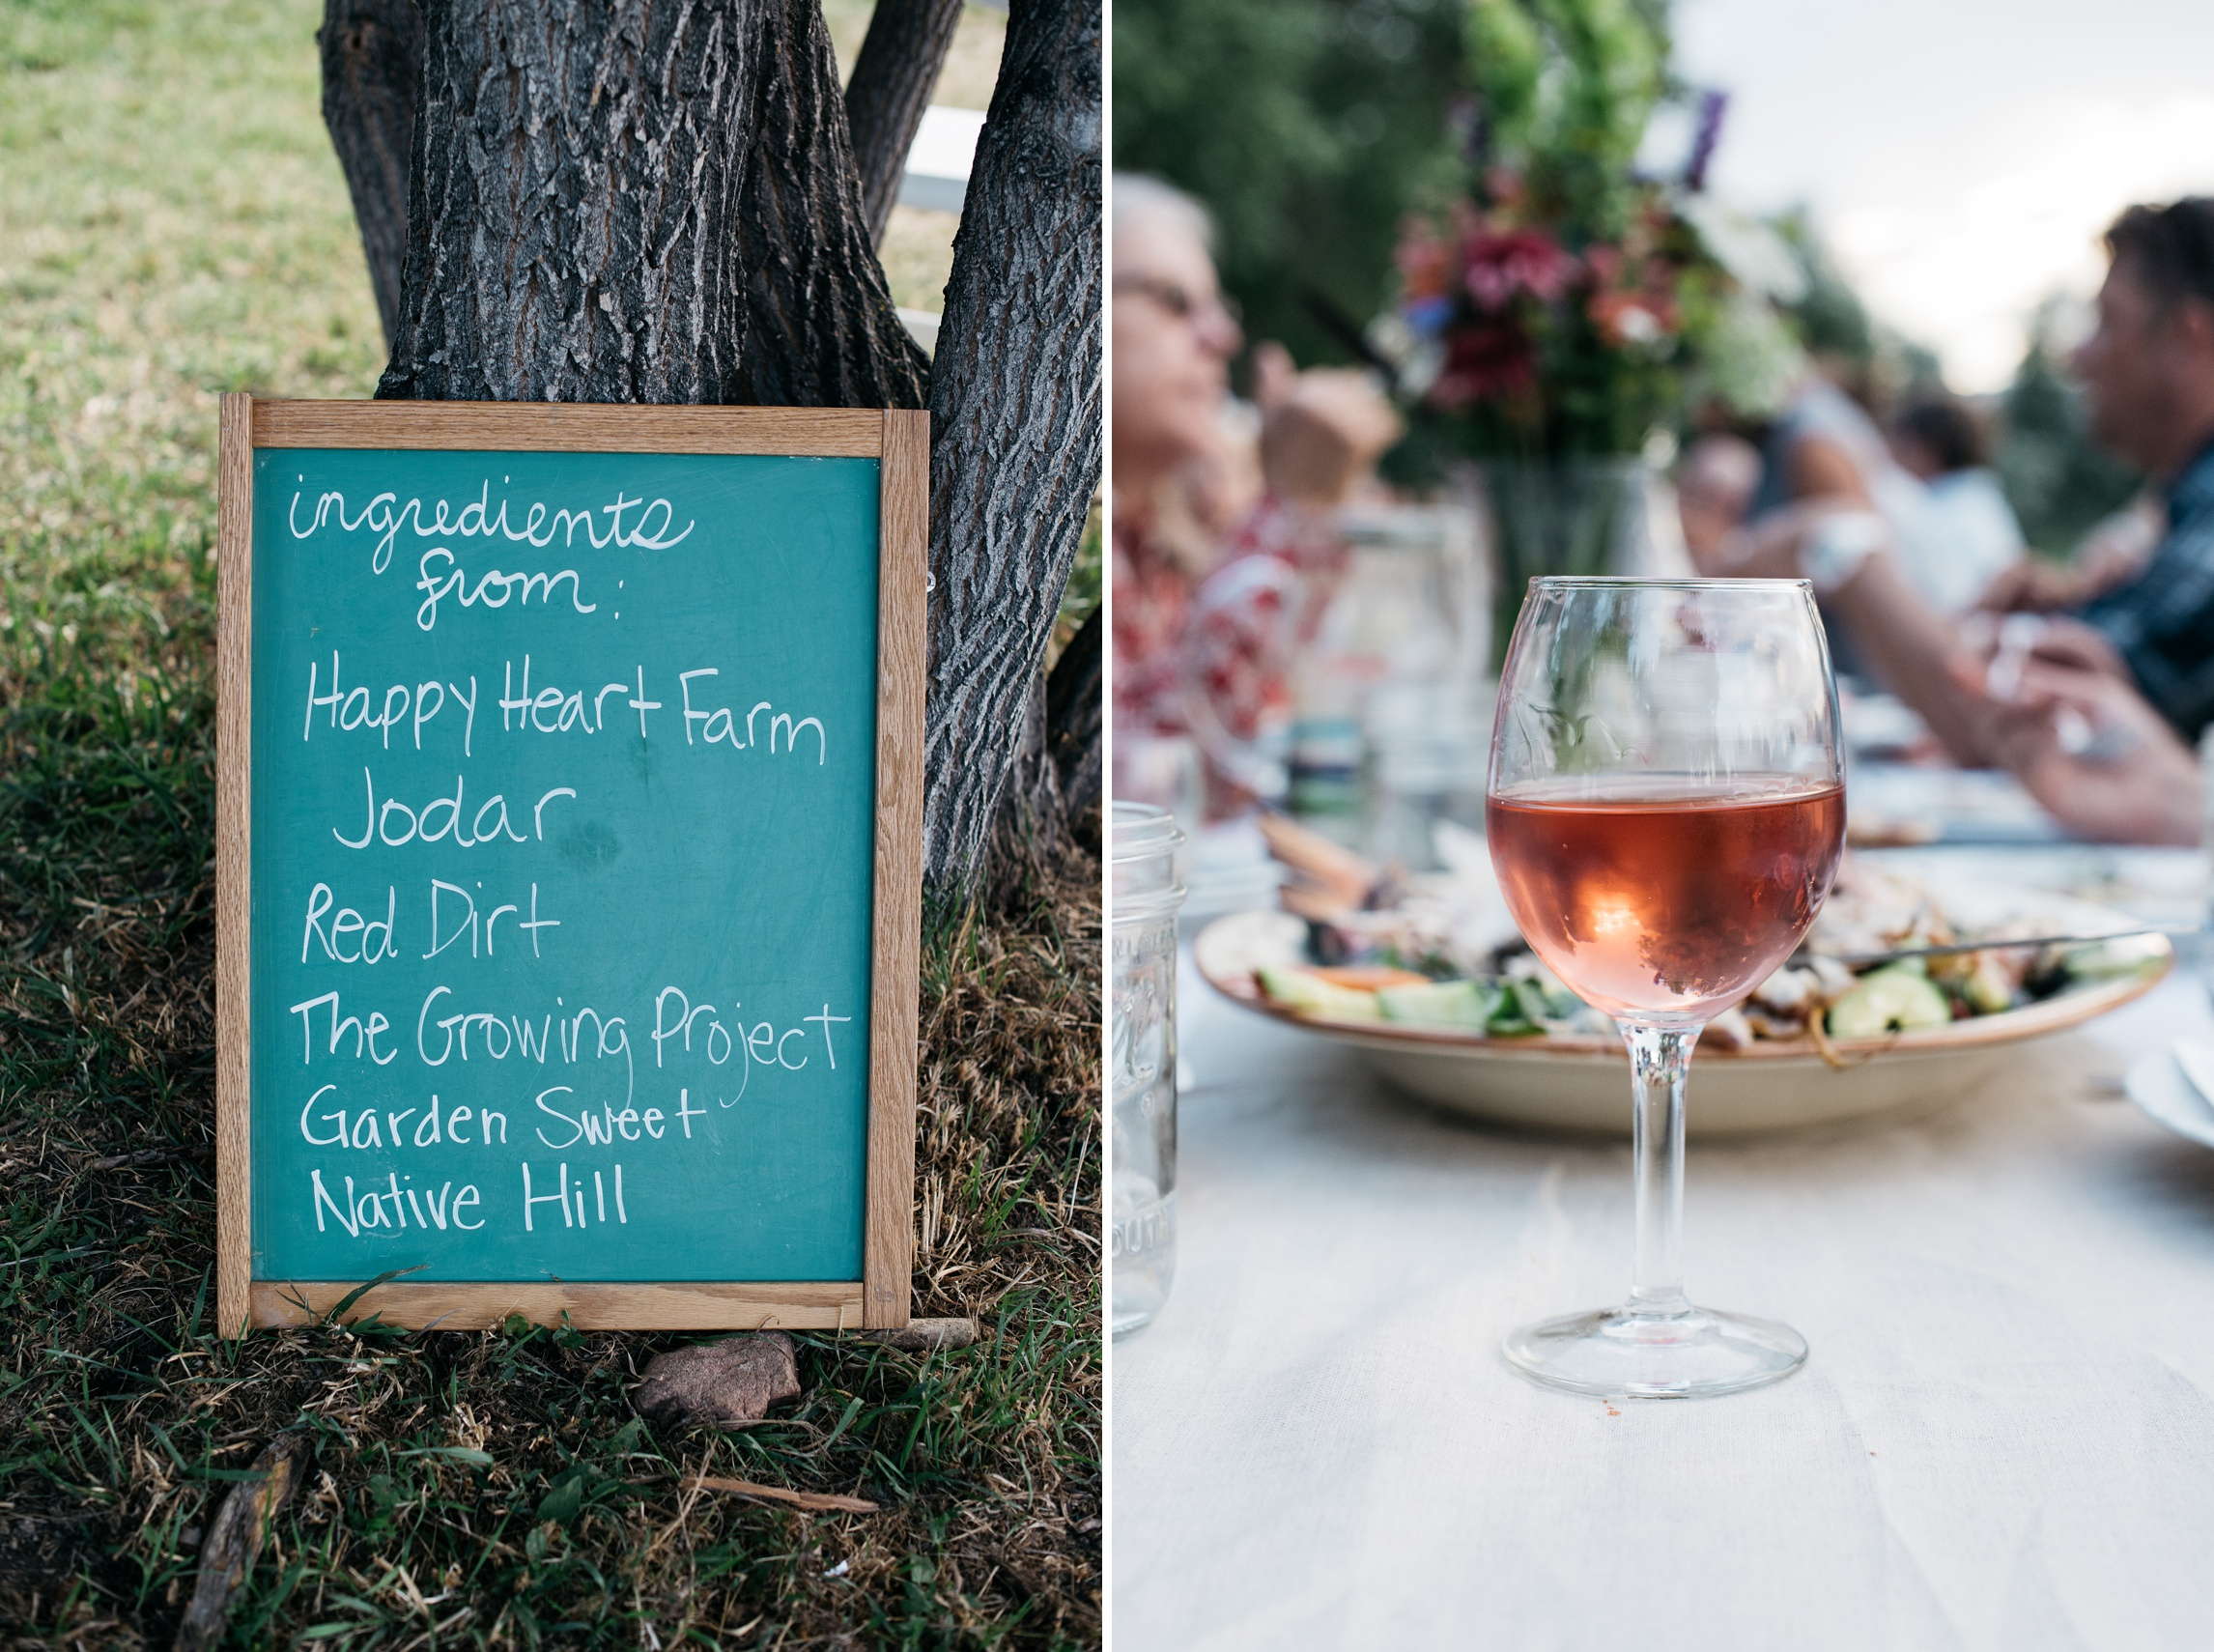 The farms who participated and a refreshing glass of wine at the Fortified Collaborations Heart of Summer Farm Dinner. Event photography by Sonja Salzburg of Sonja K Photography.